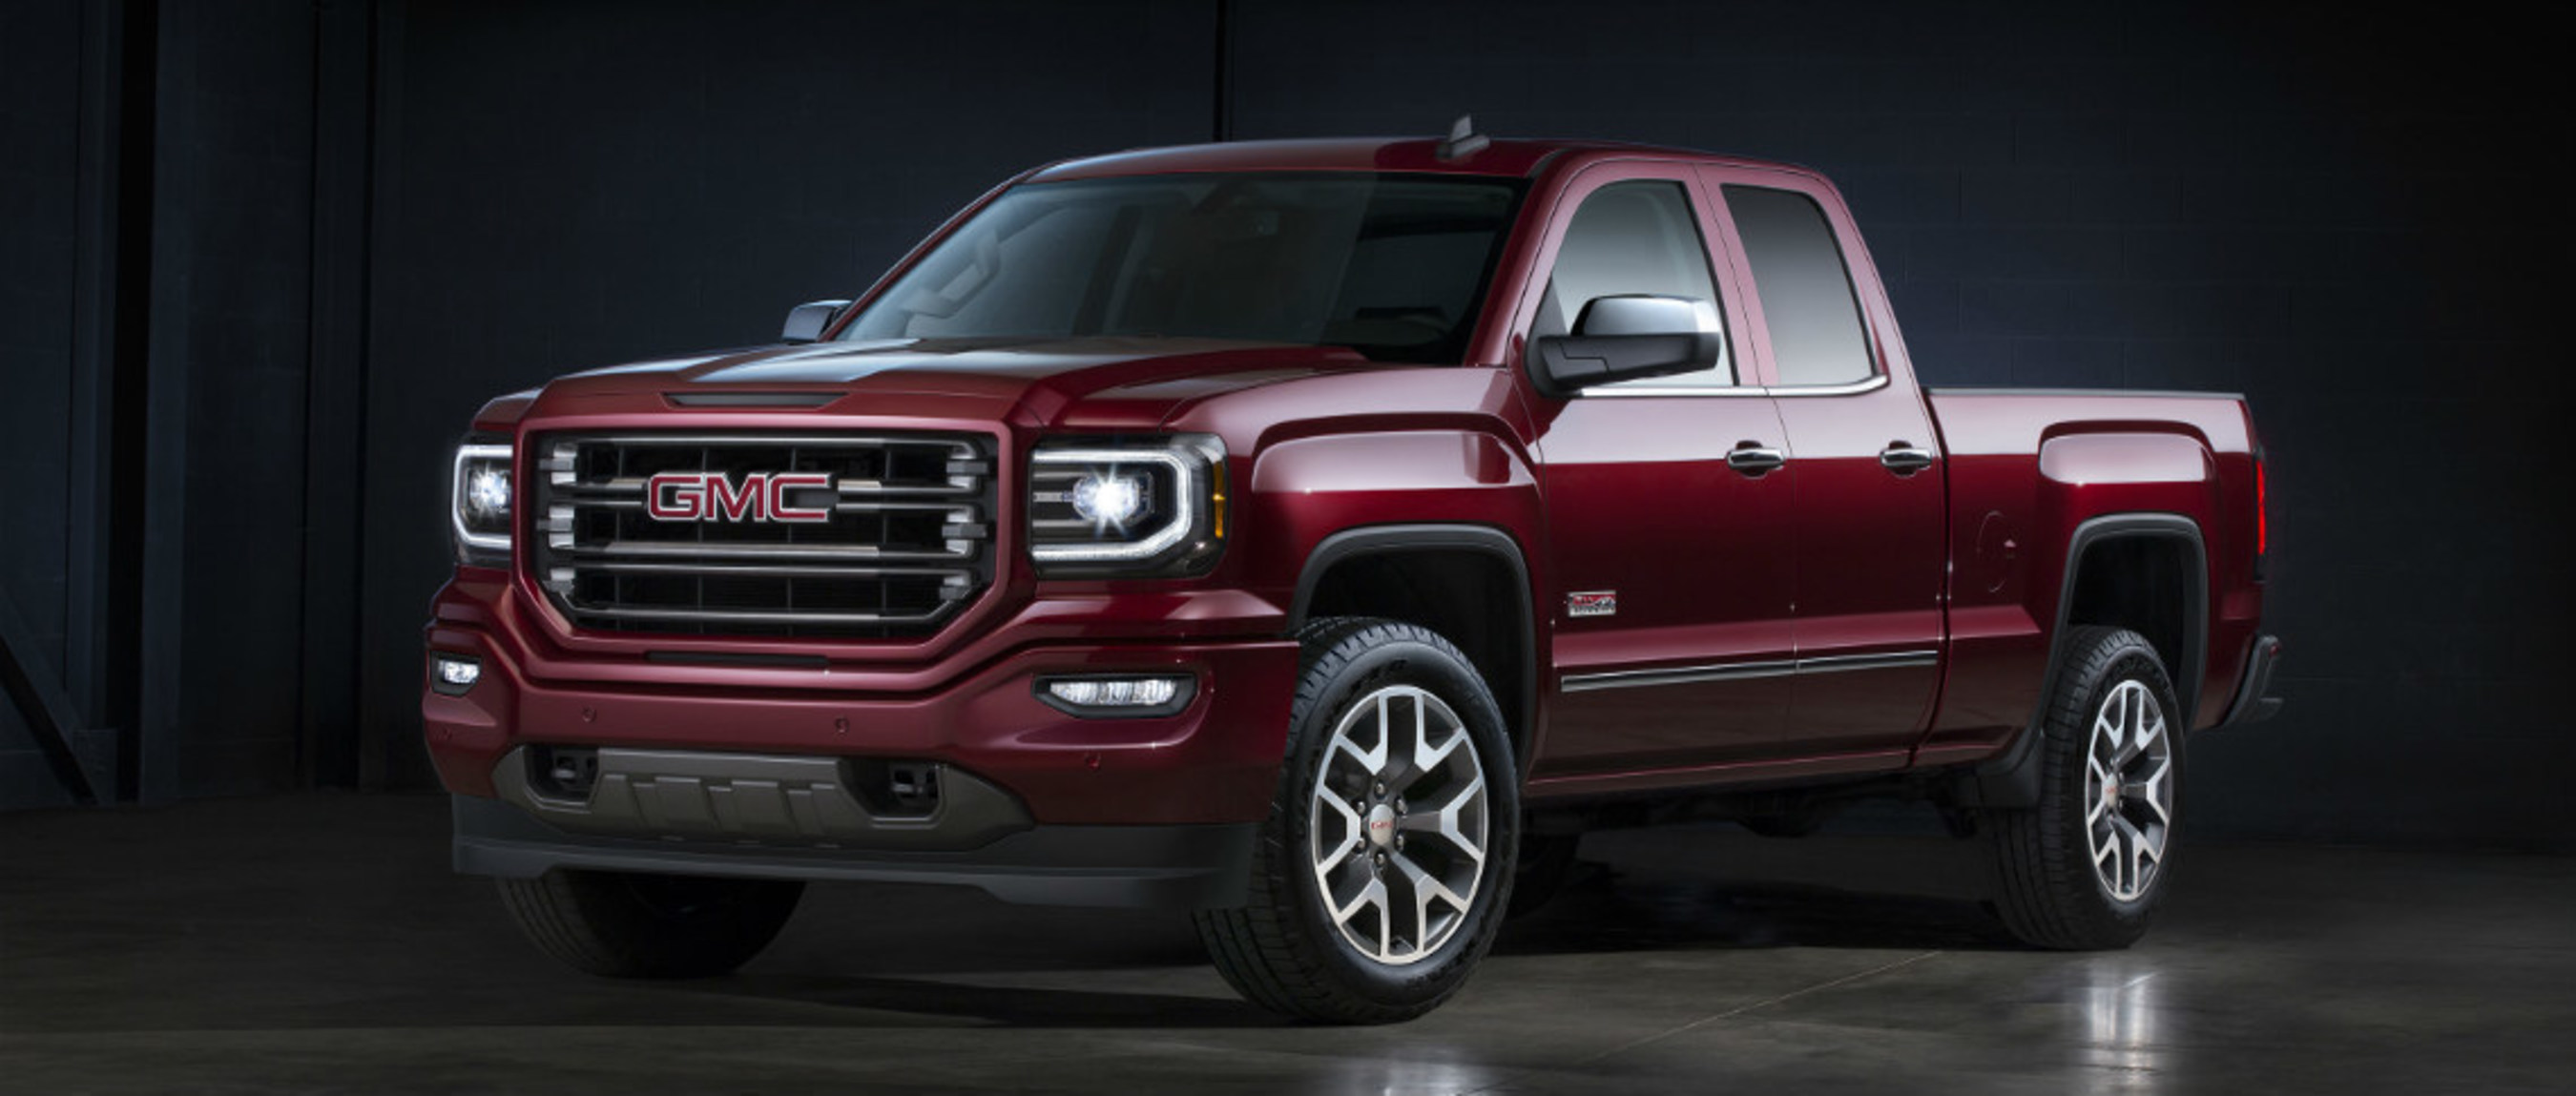 Don Wheaton shows off GMC vehicles for new customers